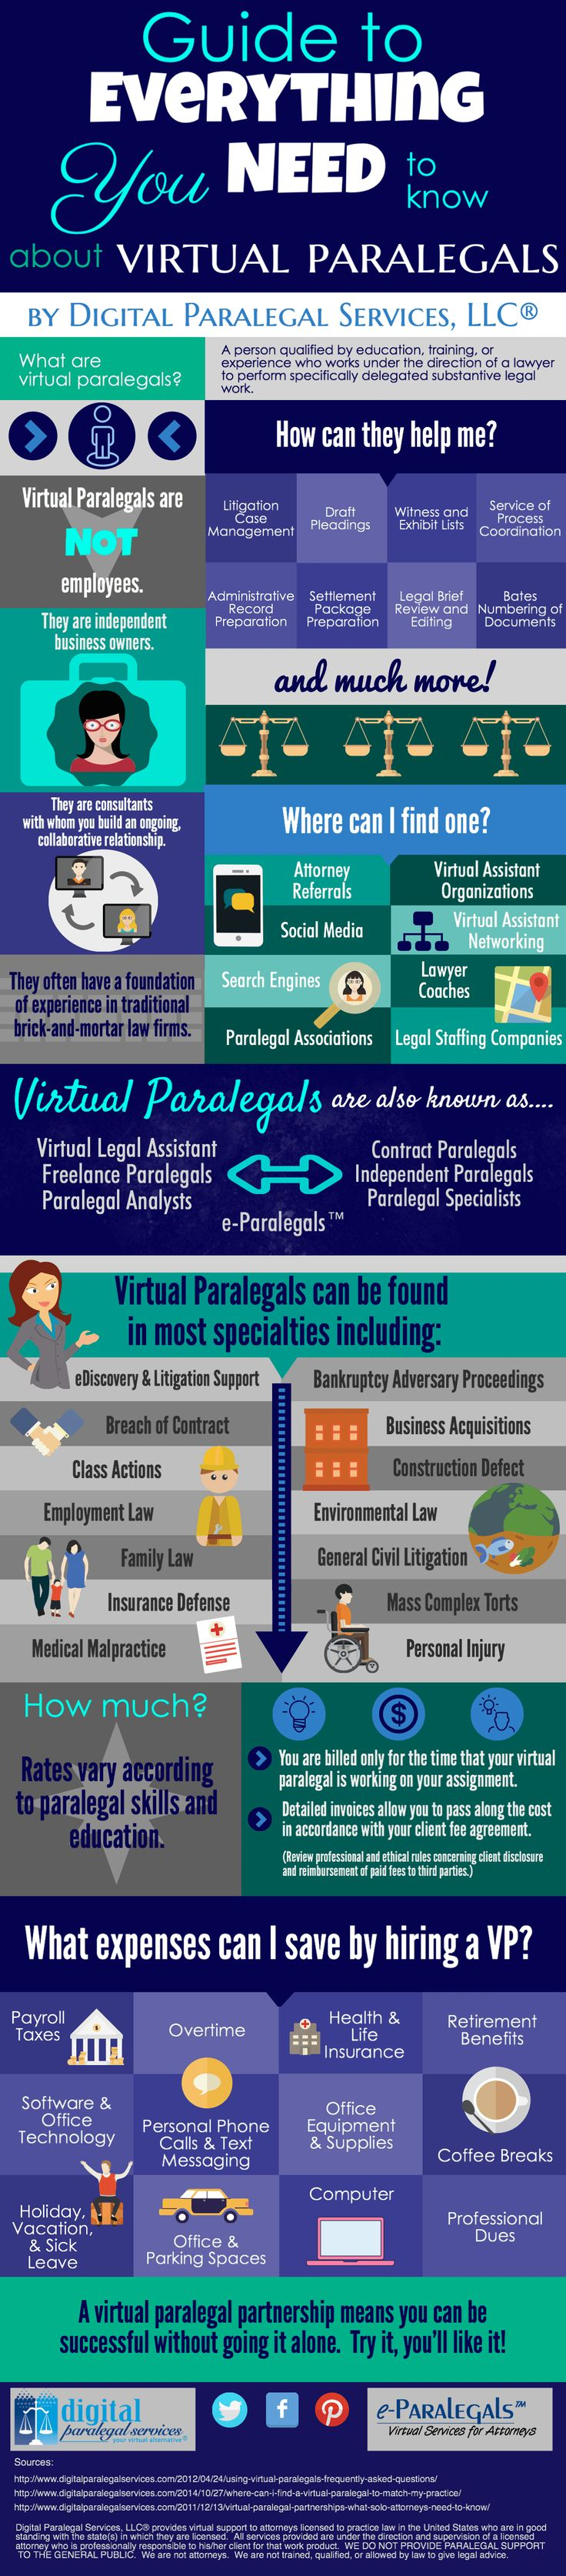 This infographic brought to you by Digital Paralegal Services, LLC® discusses some helpful information for attorneys about working with virtual paralegals.